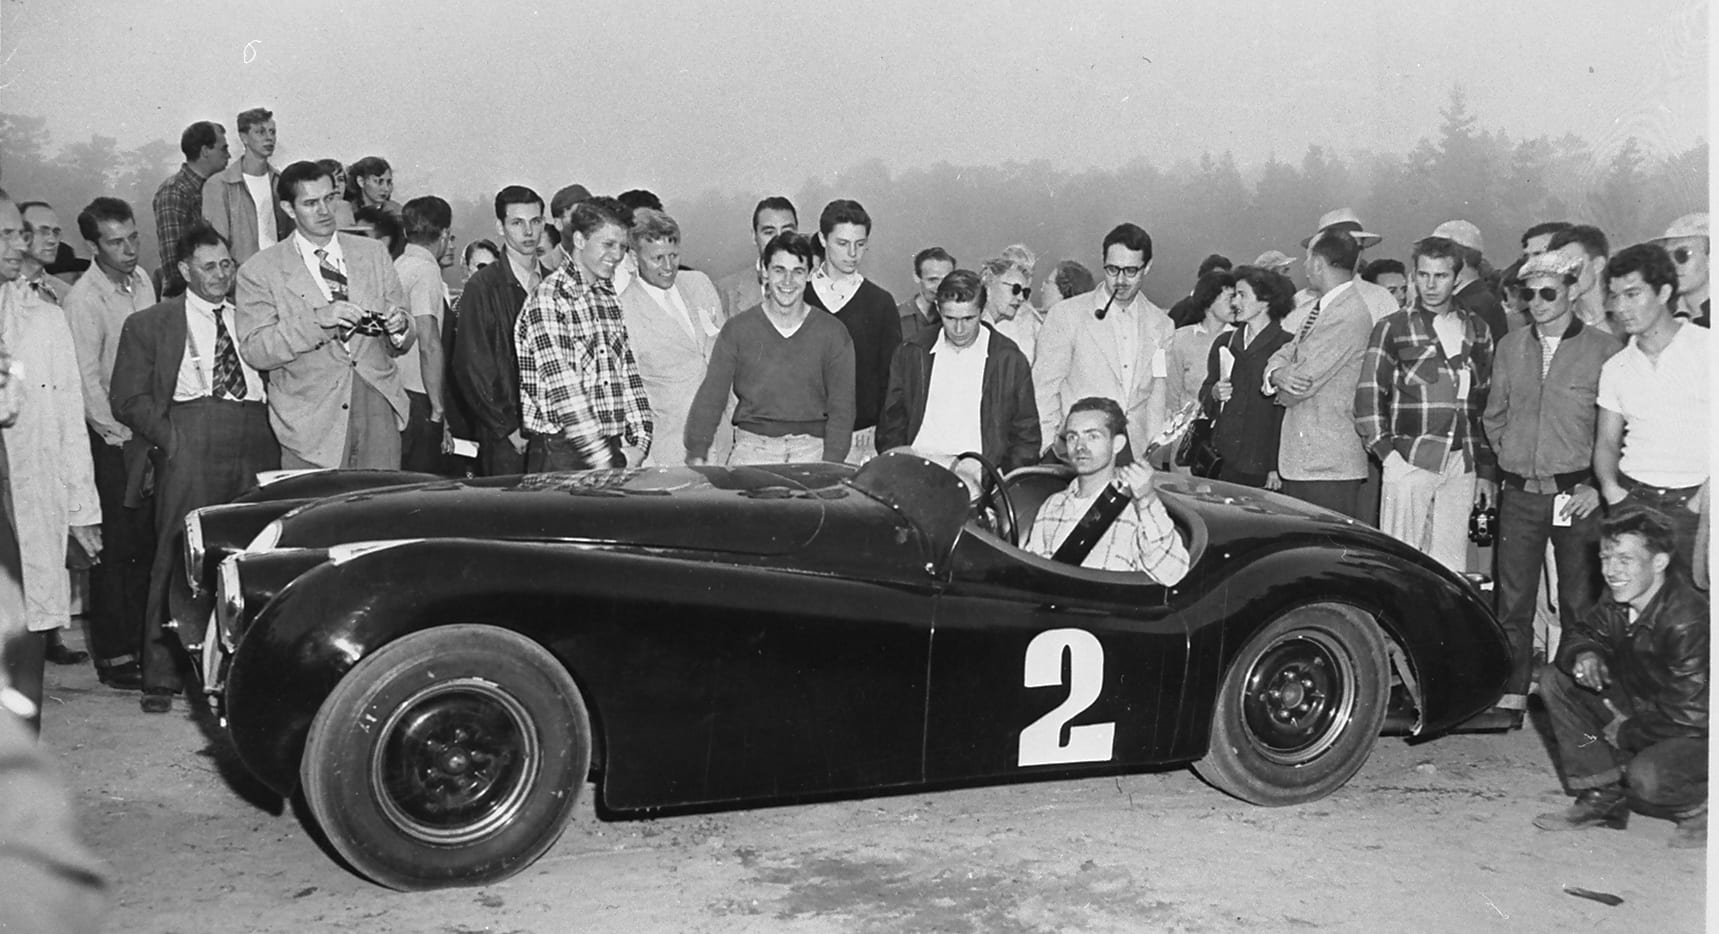 1_201950_races_20_20another_20of_20hill_20with_20first_20trophy_20copy